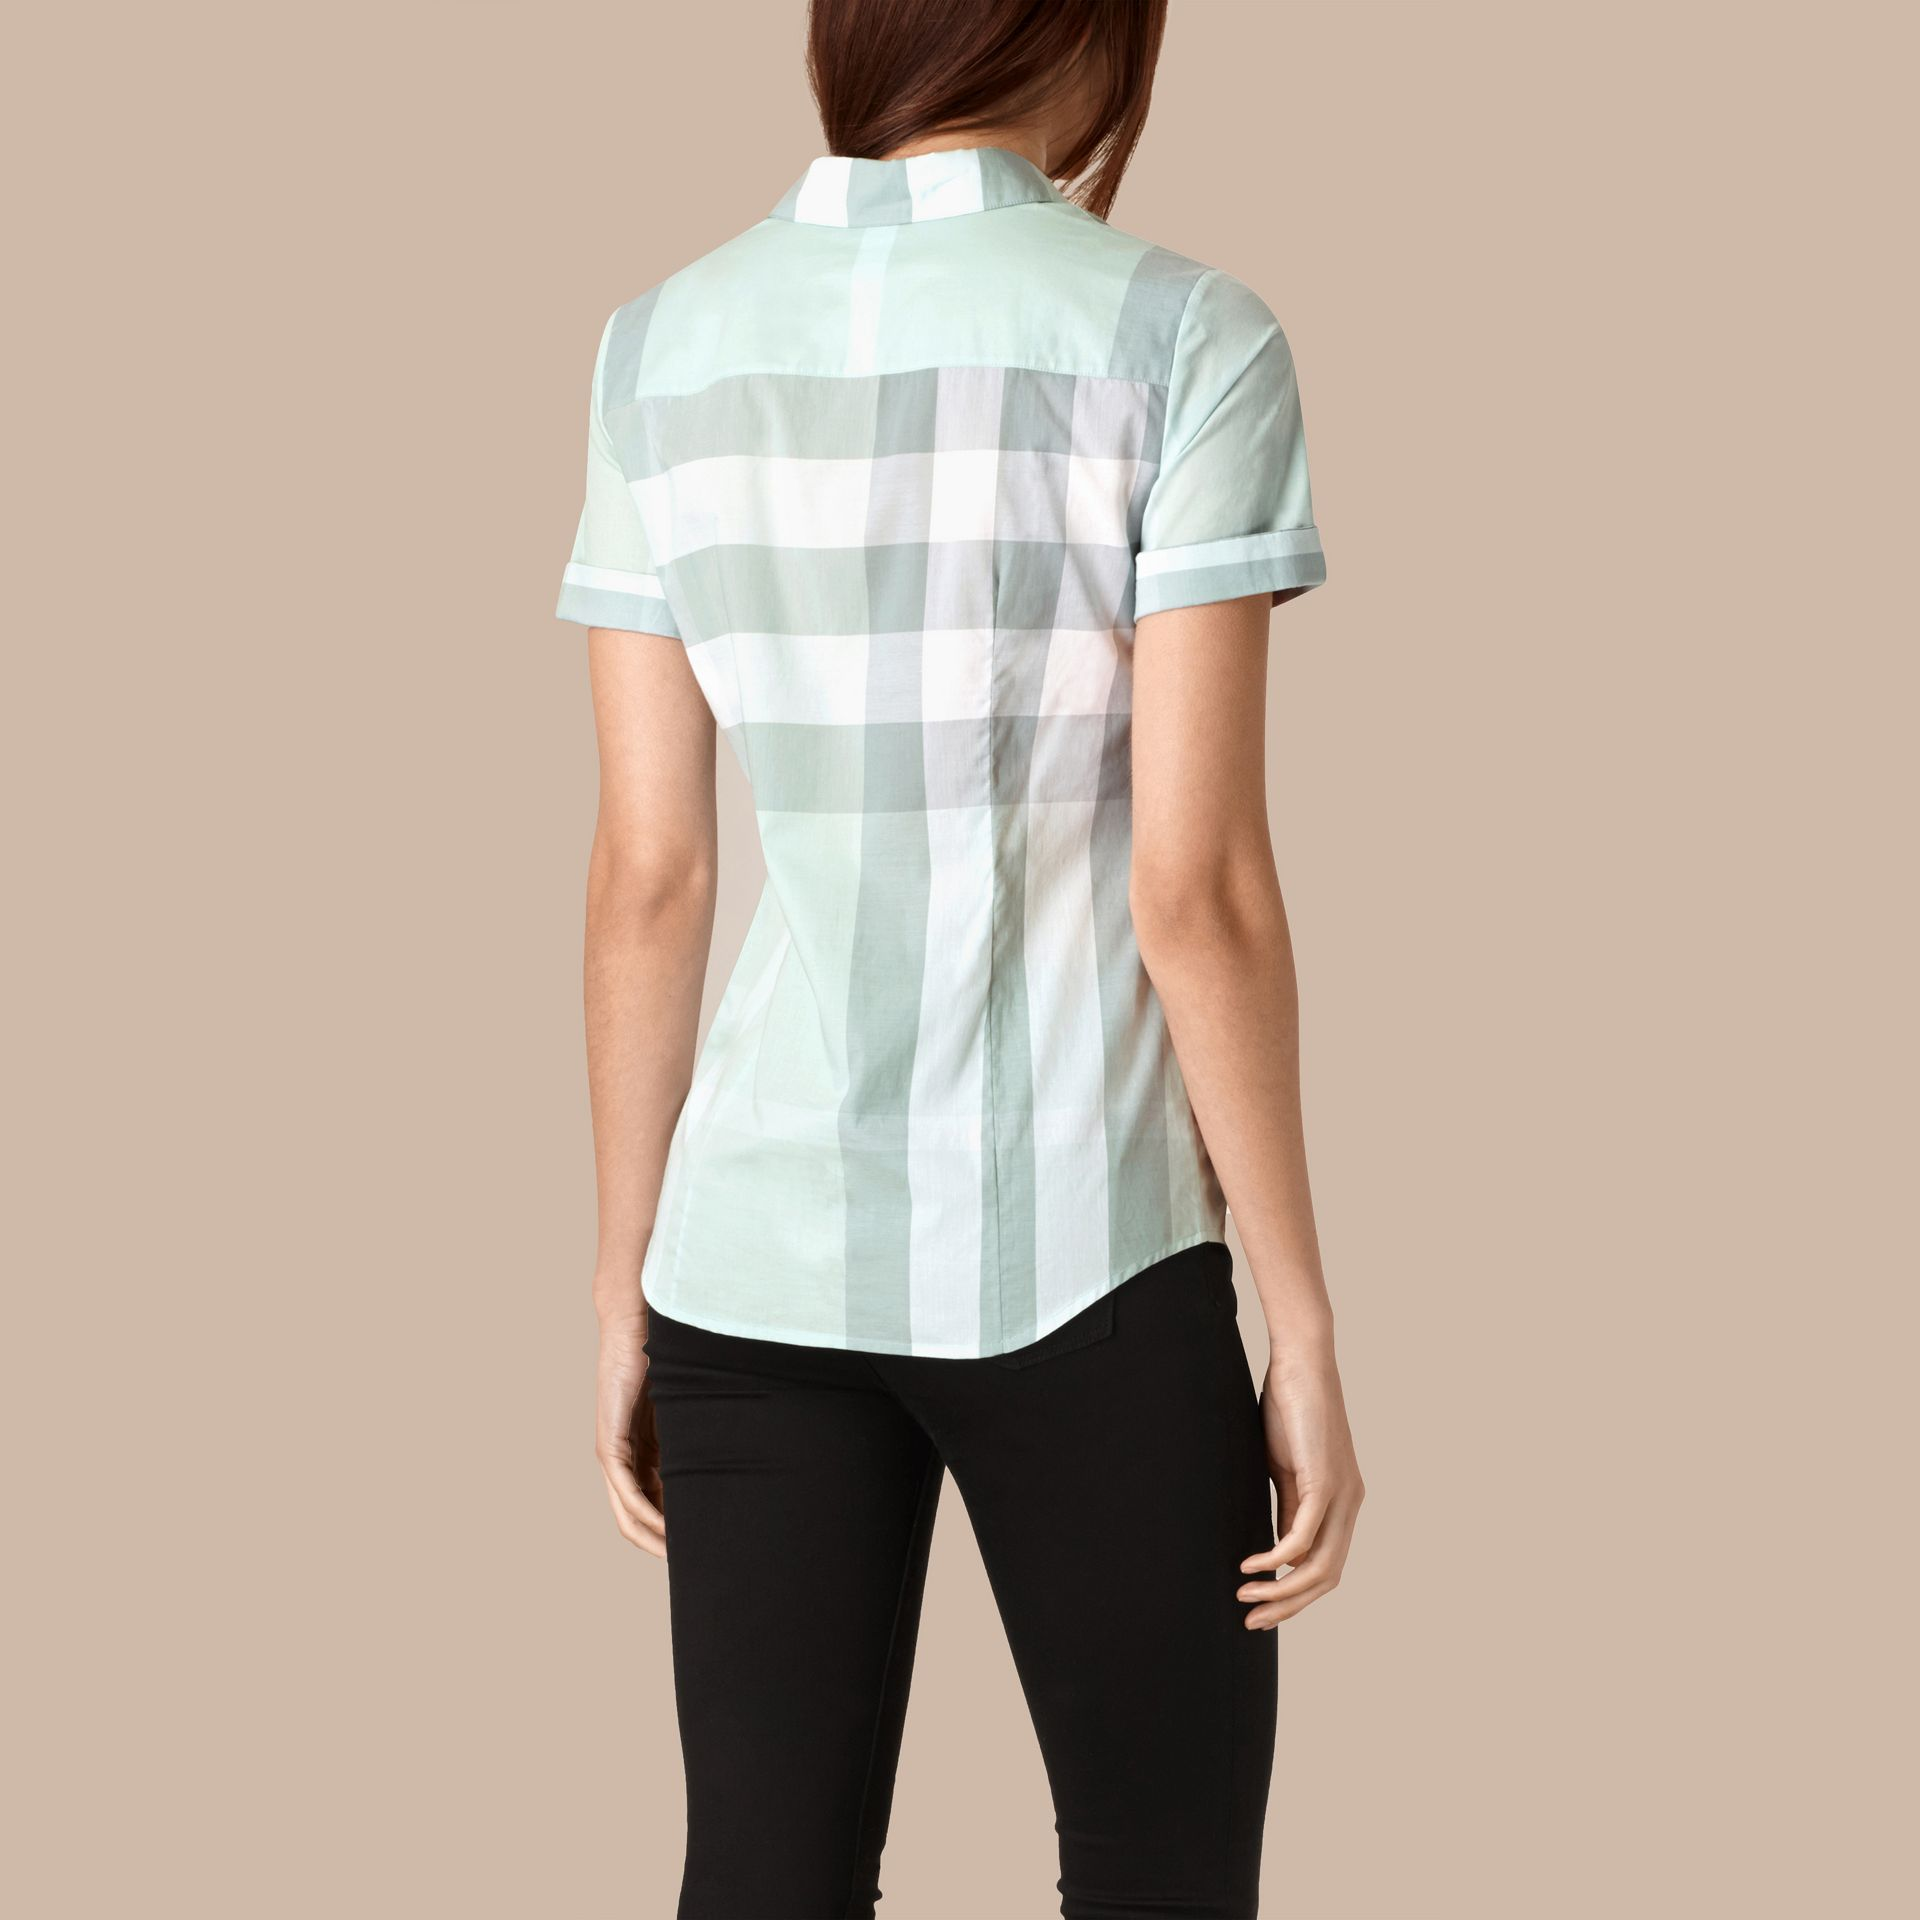 Powder blue Short-sleeved Check Cotton Shirt Powder Blue - gallery image 3